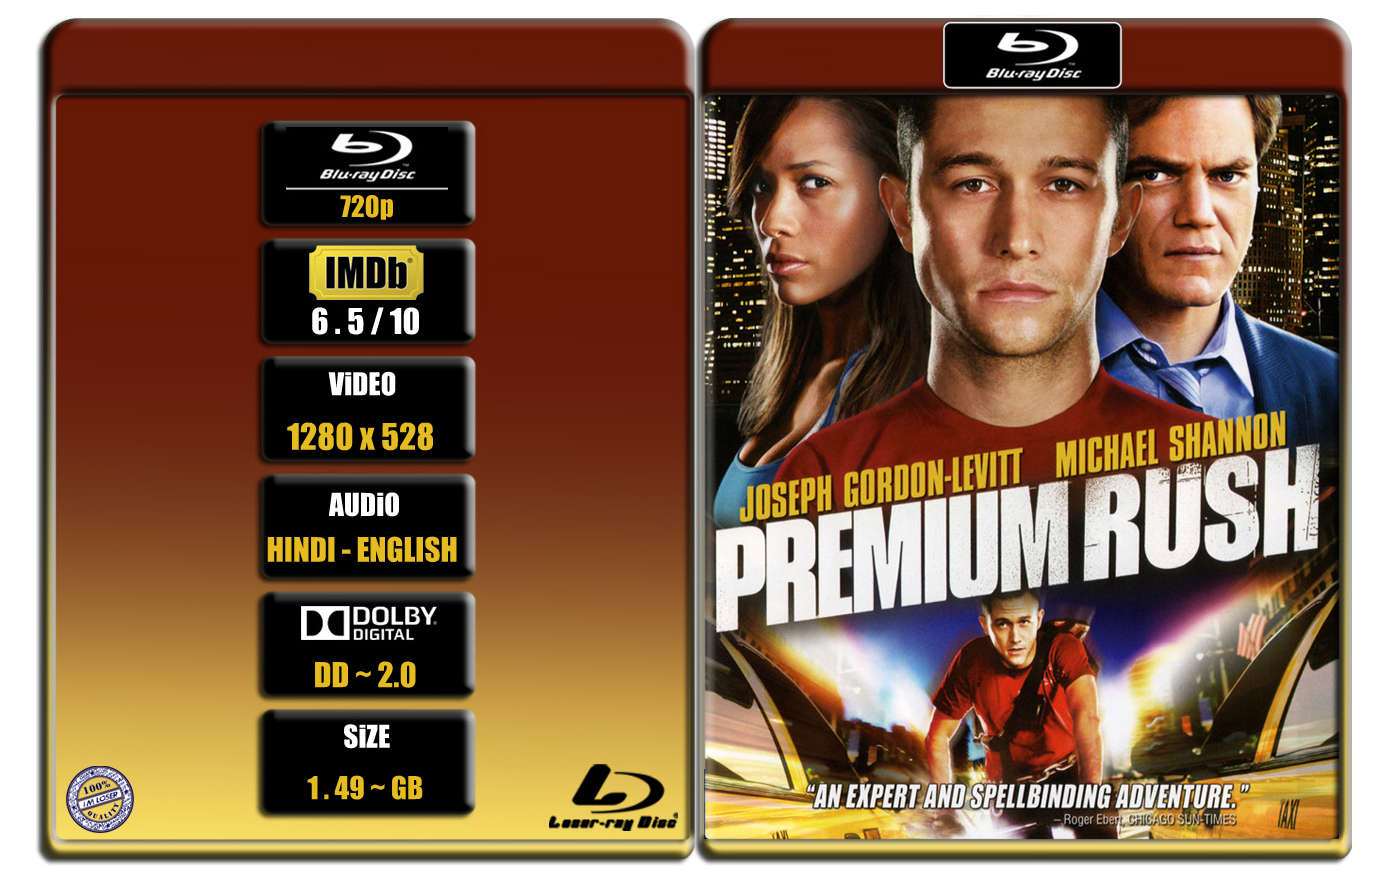 Premium Rush [2012] 720p BR Rip x264 [DD 2.0] [HINDI ENG] ® Im Loser ® 1.5 GB